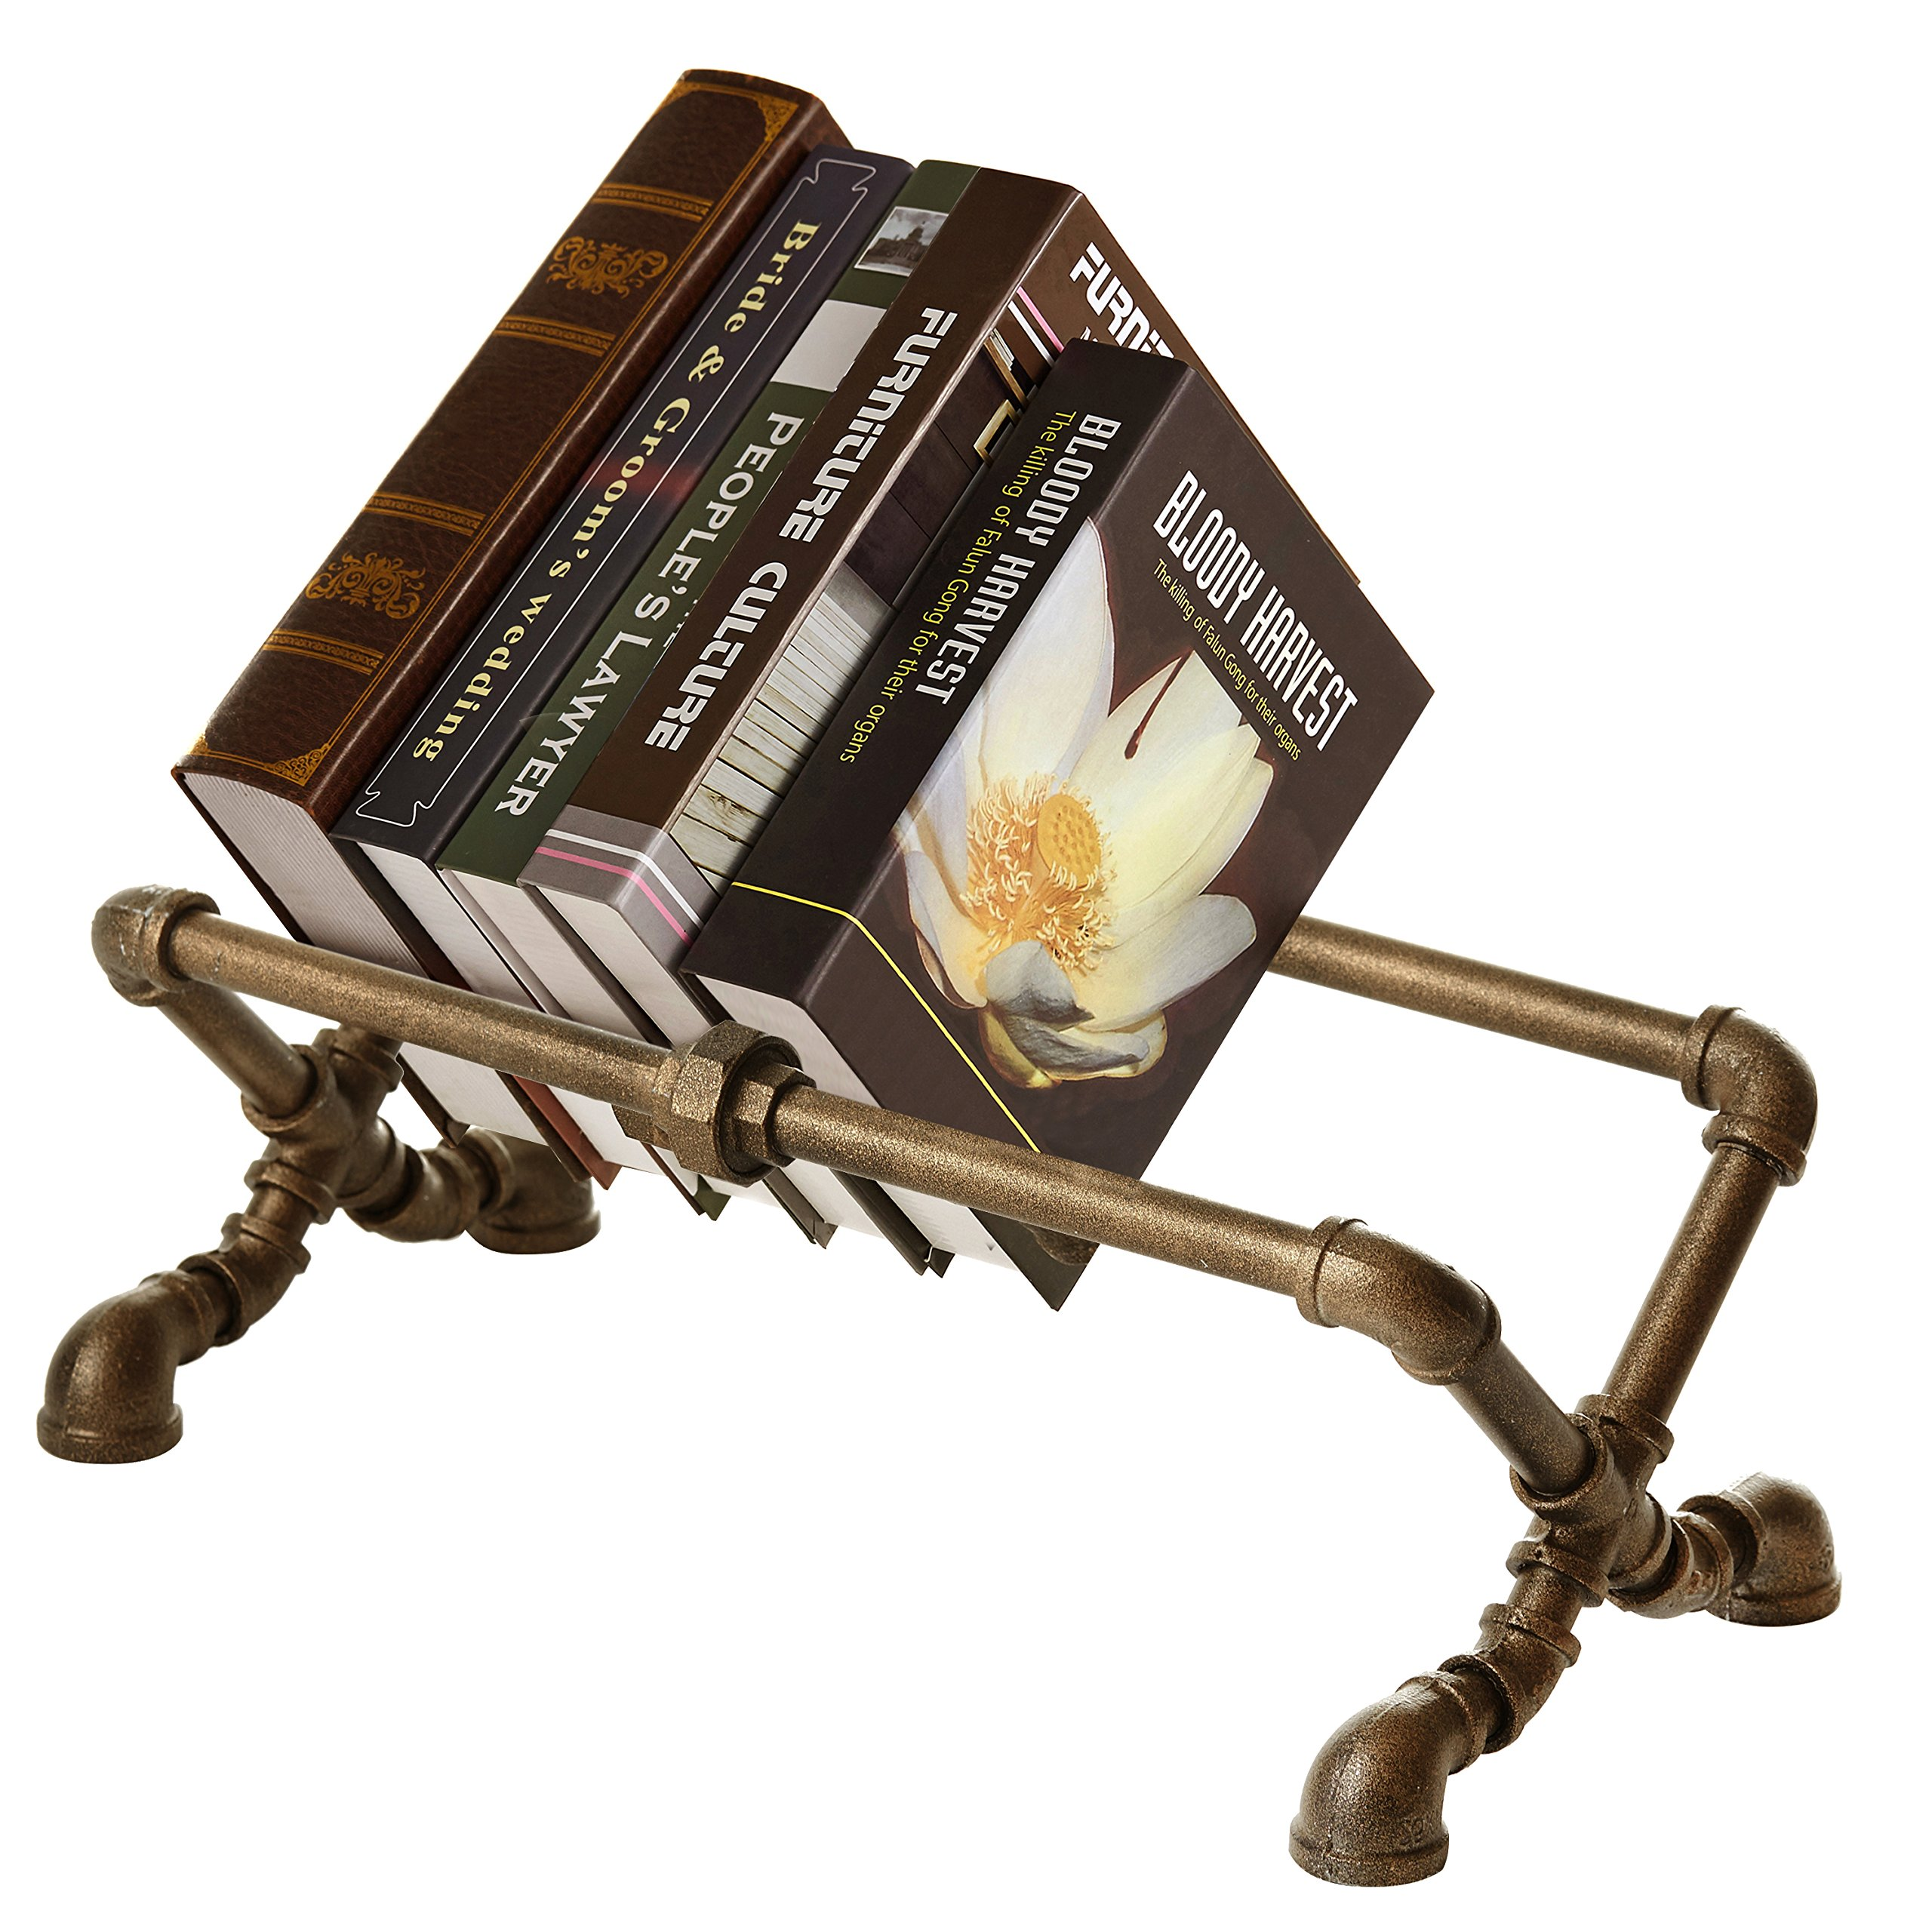 Decorative Industrial Pipe Design Metal Tabletop Book Rack